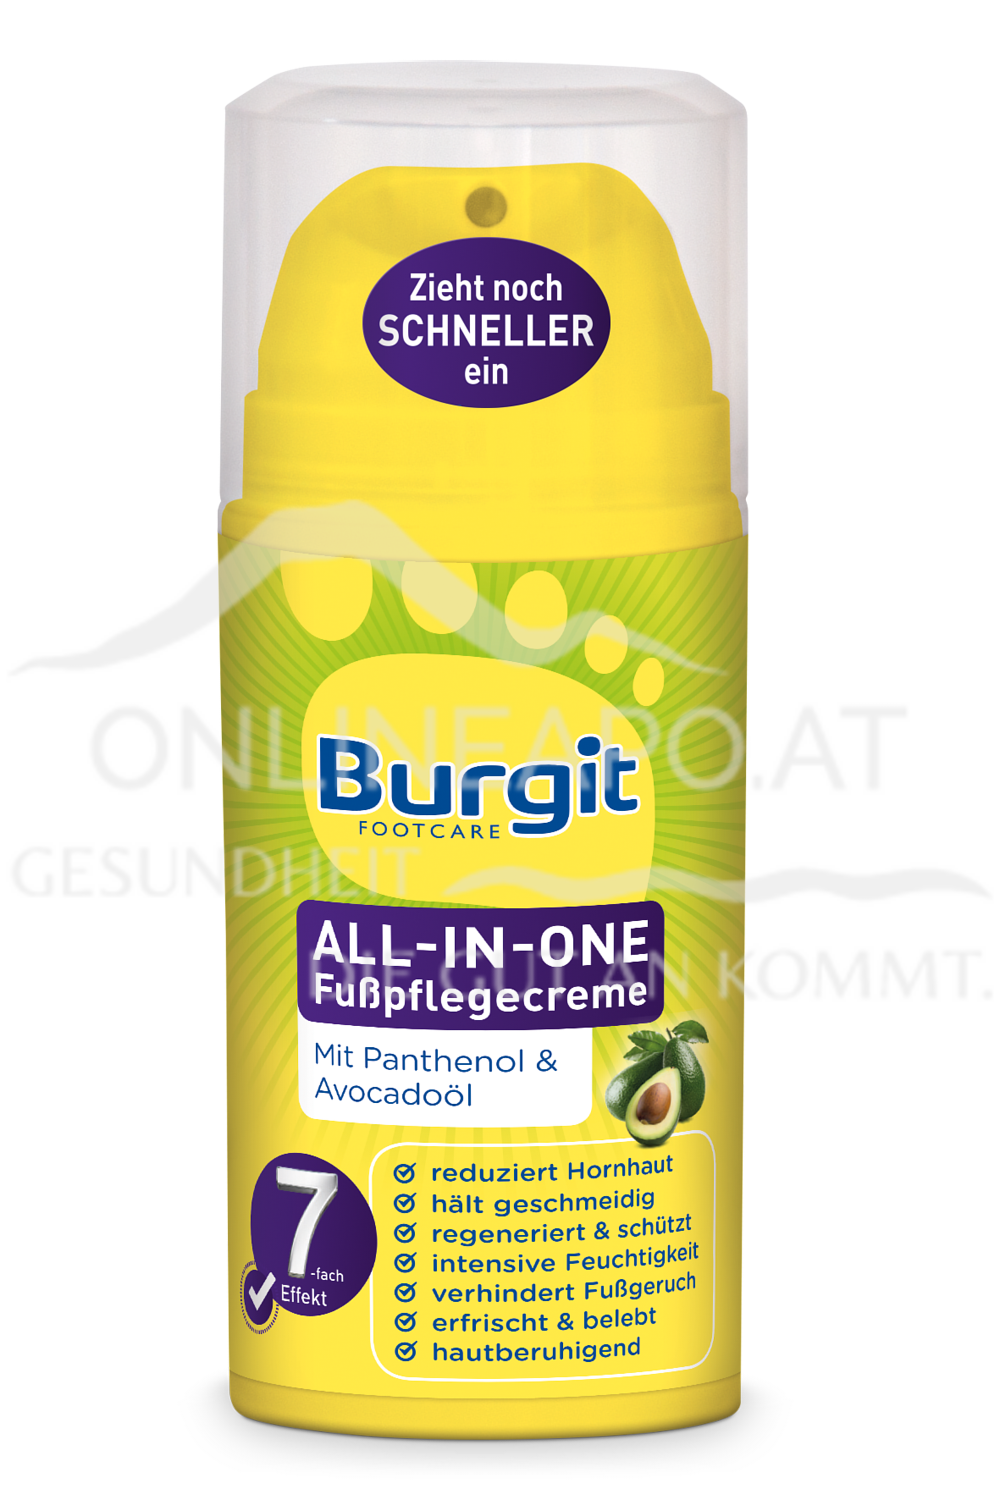 Burgit All-In-One Fußpflegecreme